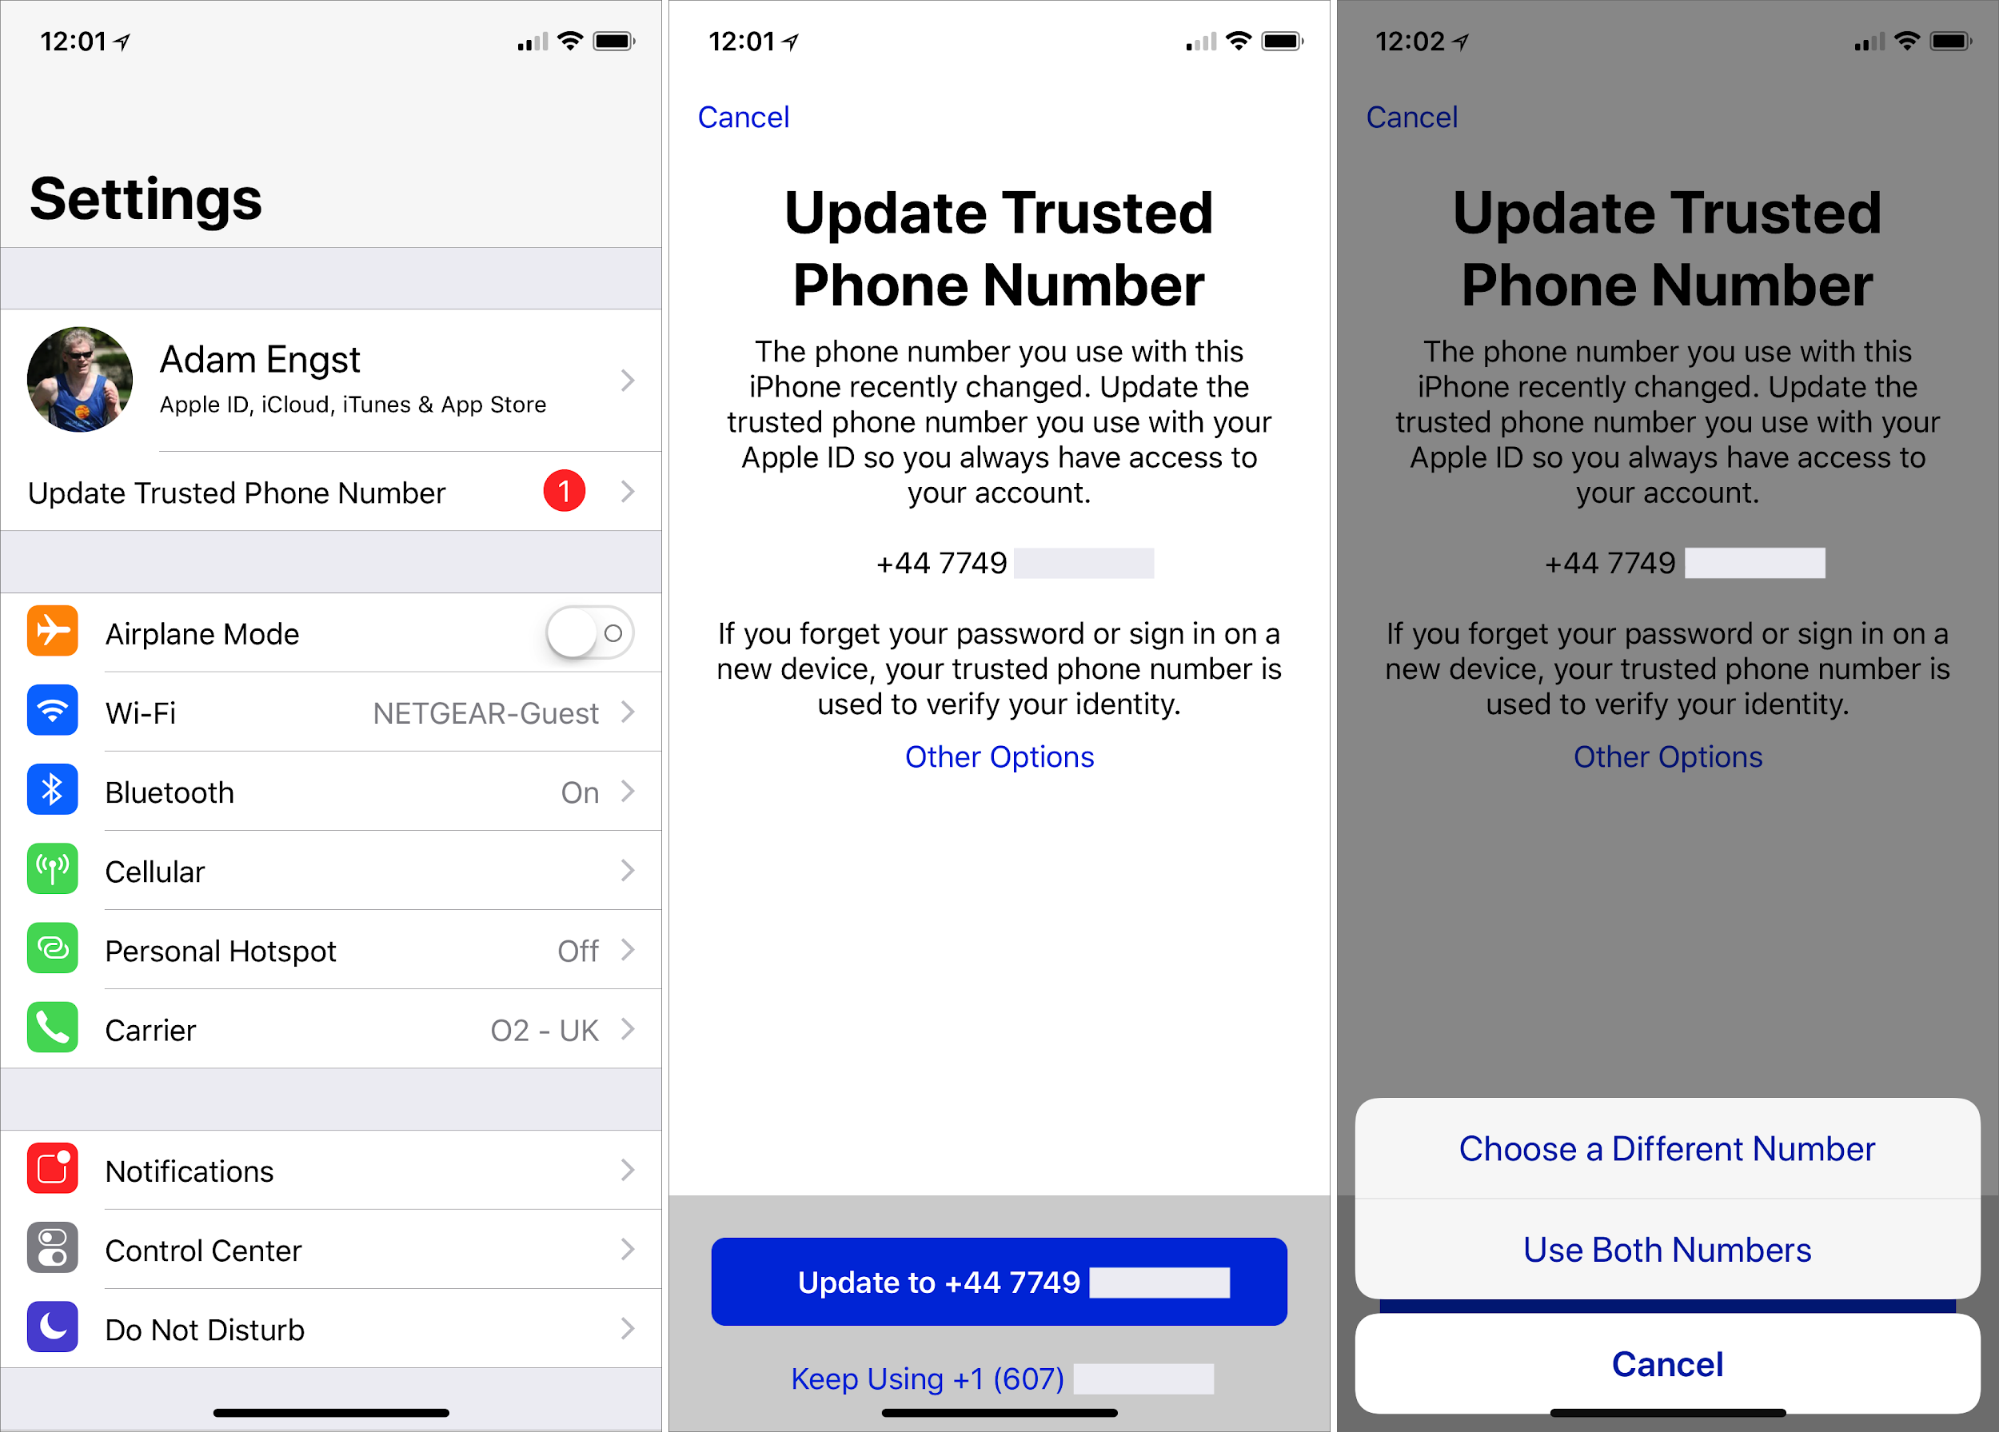 apple how to change trusted phone number